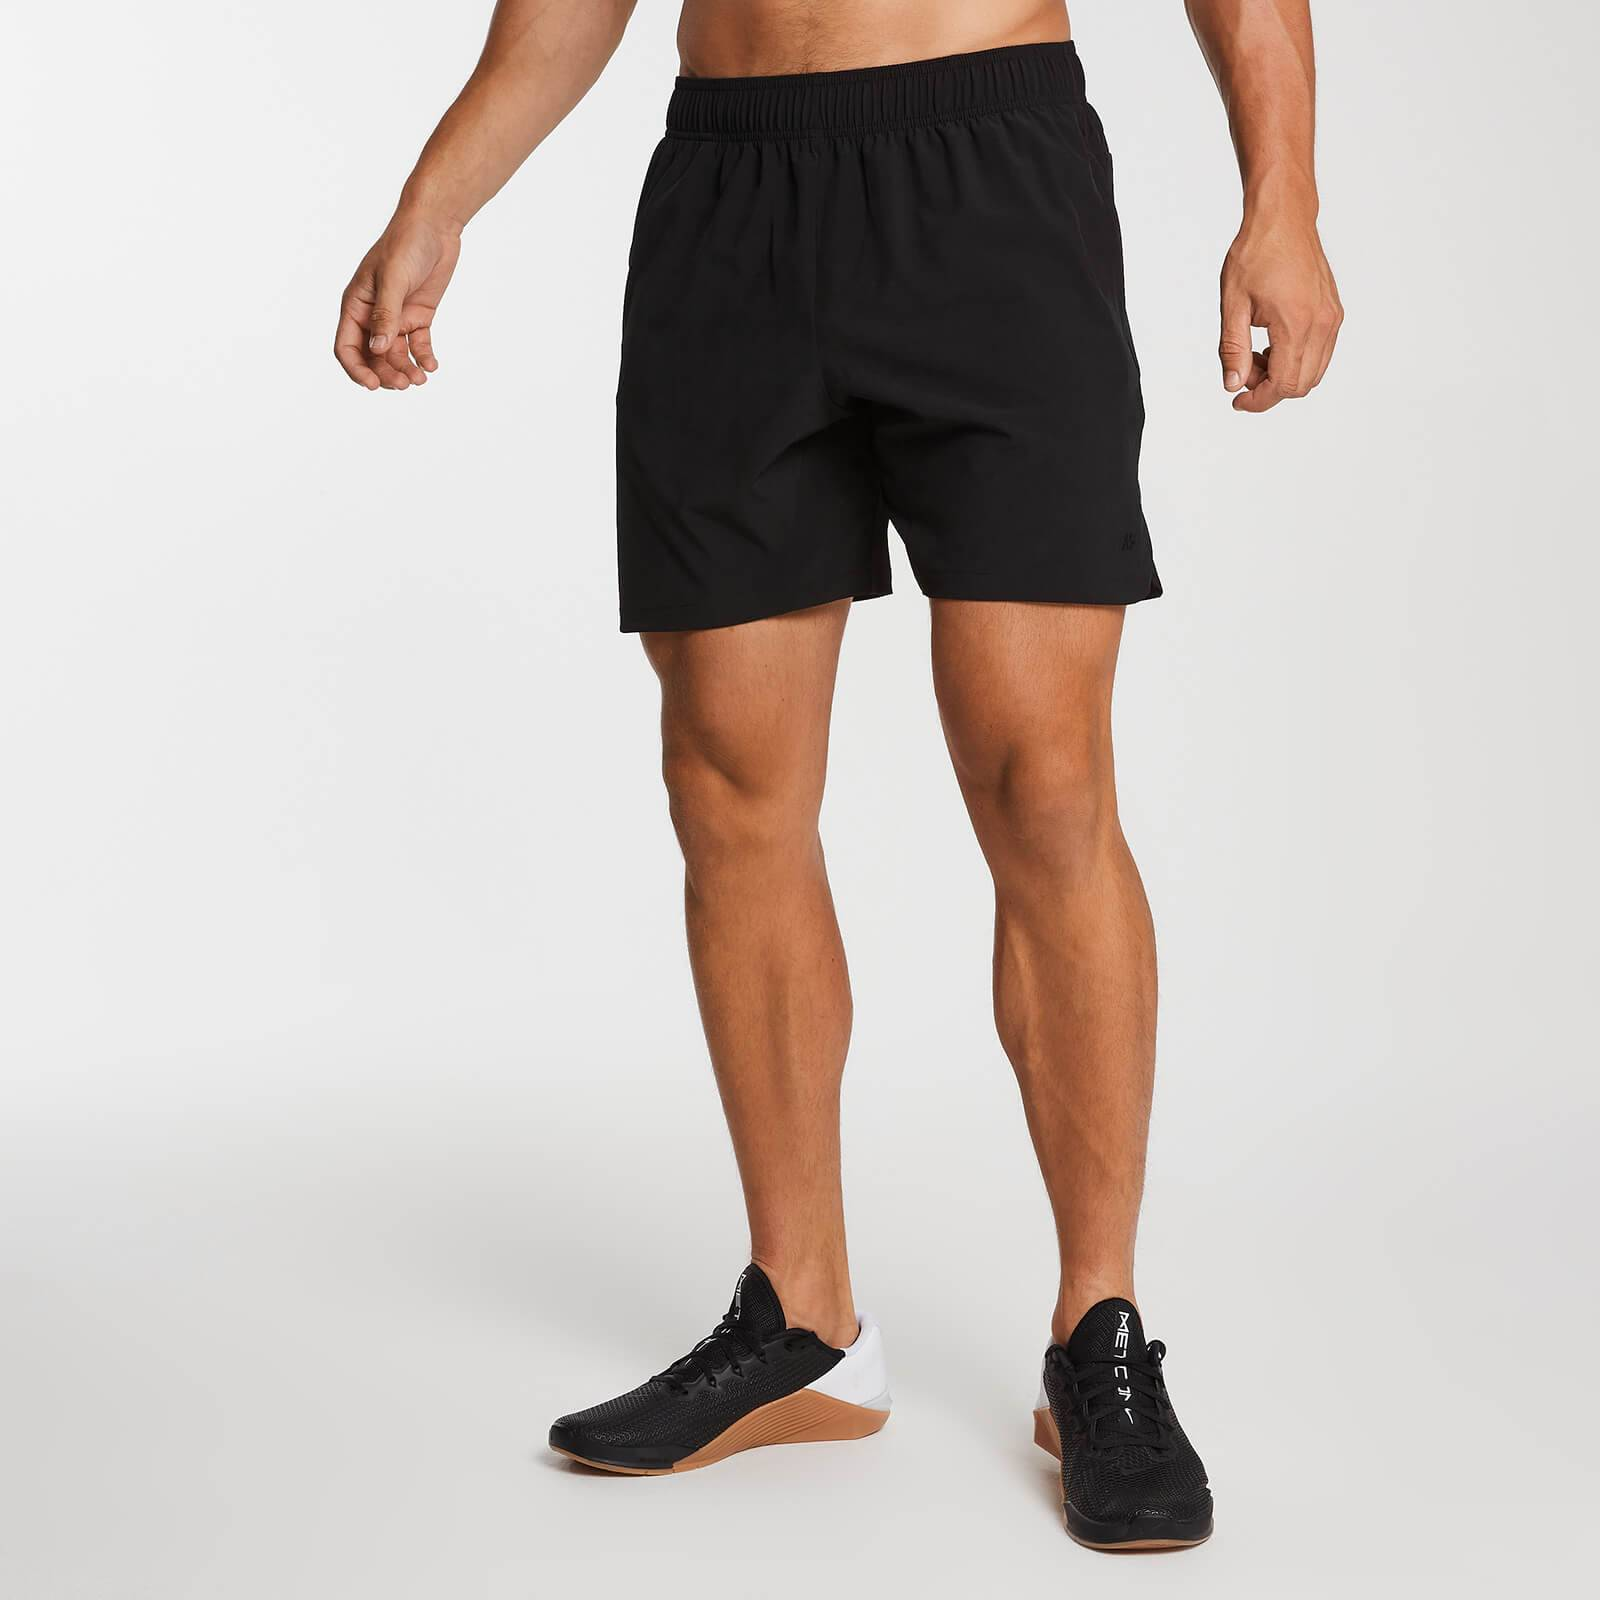 Mp Pantaloncini Training Essentials  da uomo - Nero - XS